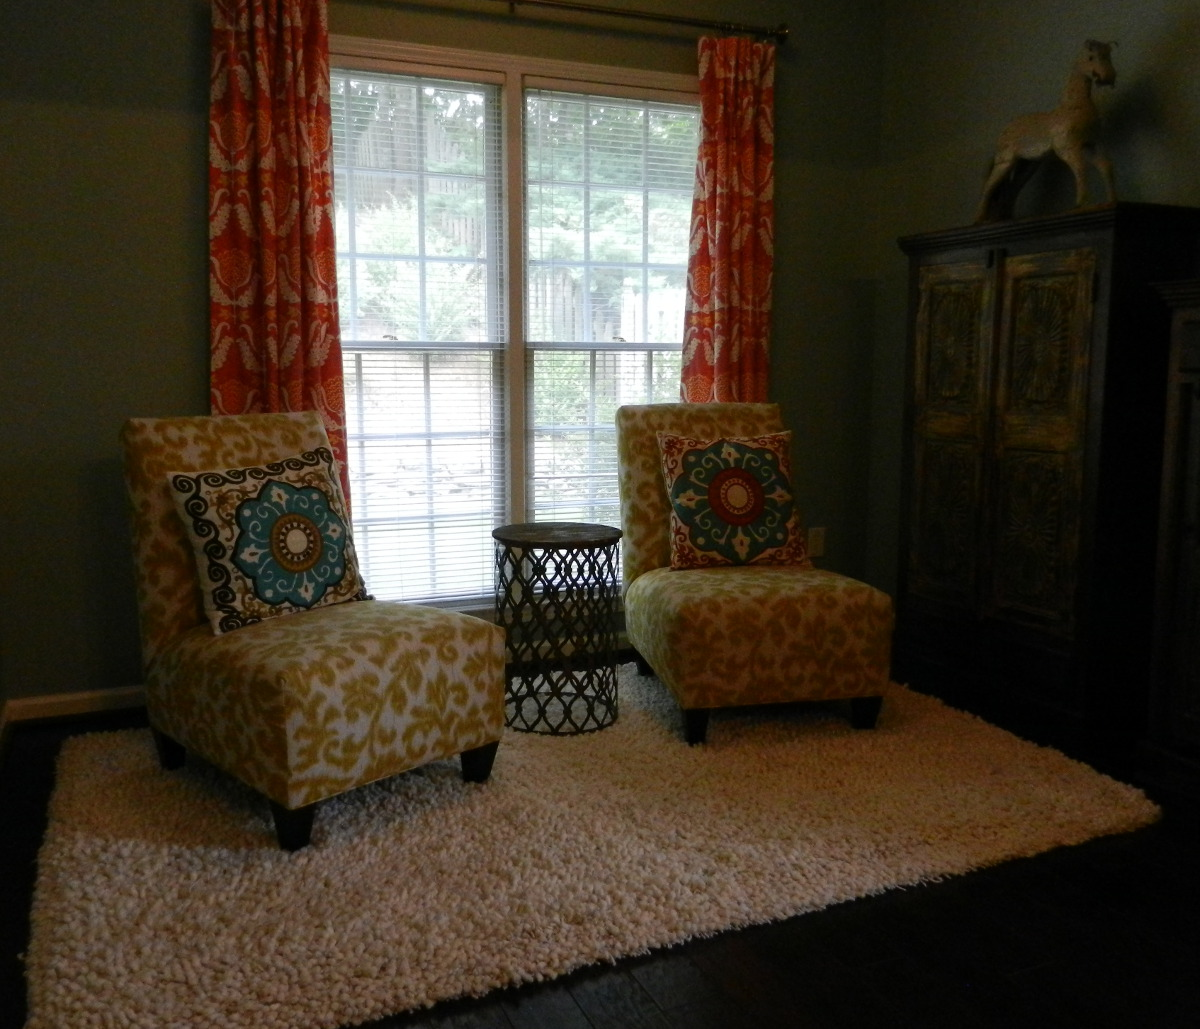 master bedroom decorating ideas - yellow ikat upholstered slipper chairs - Atticmag